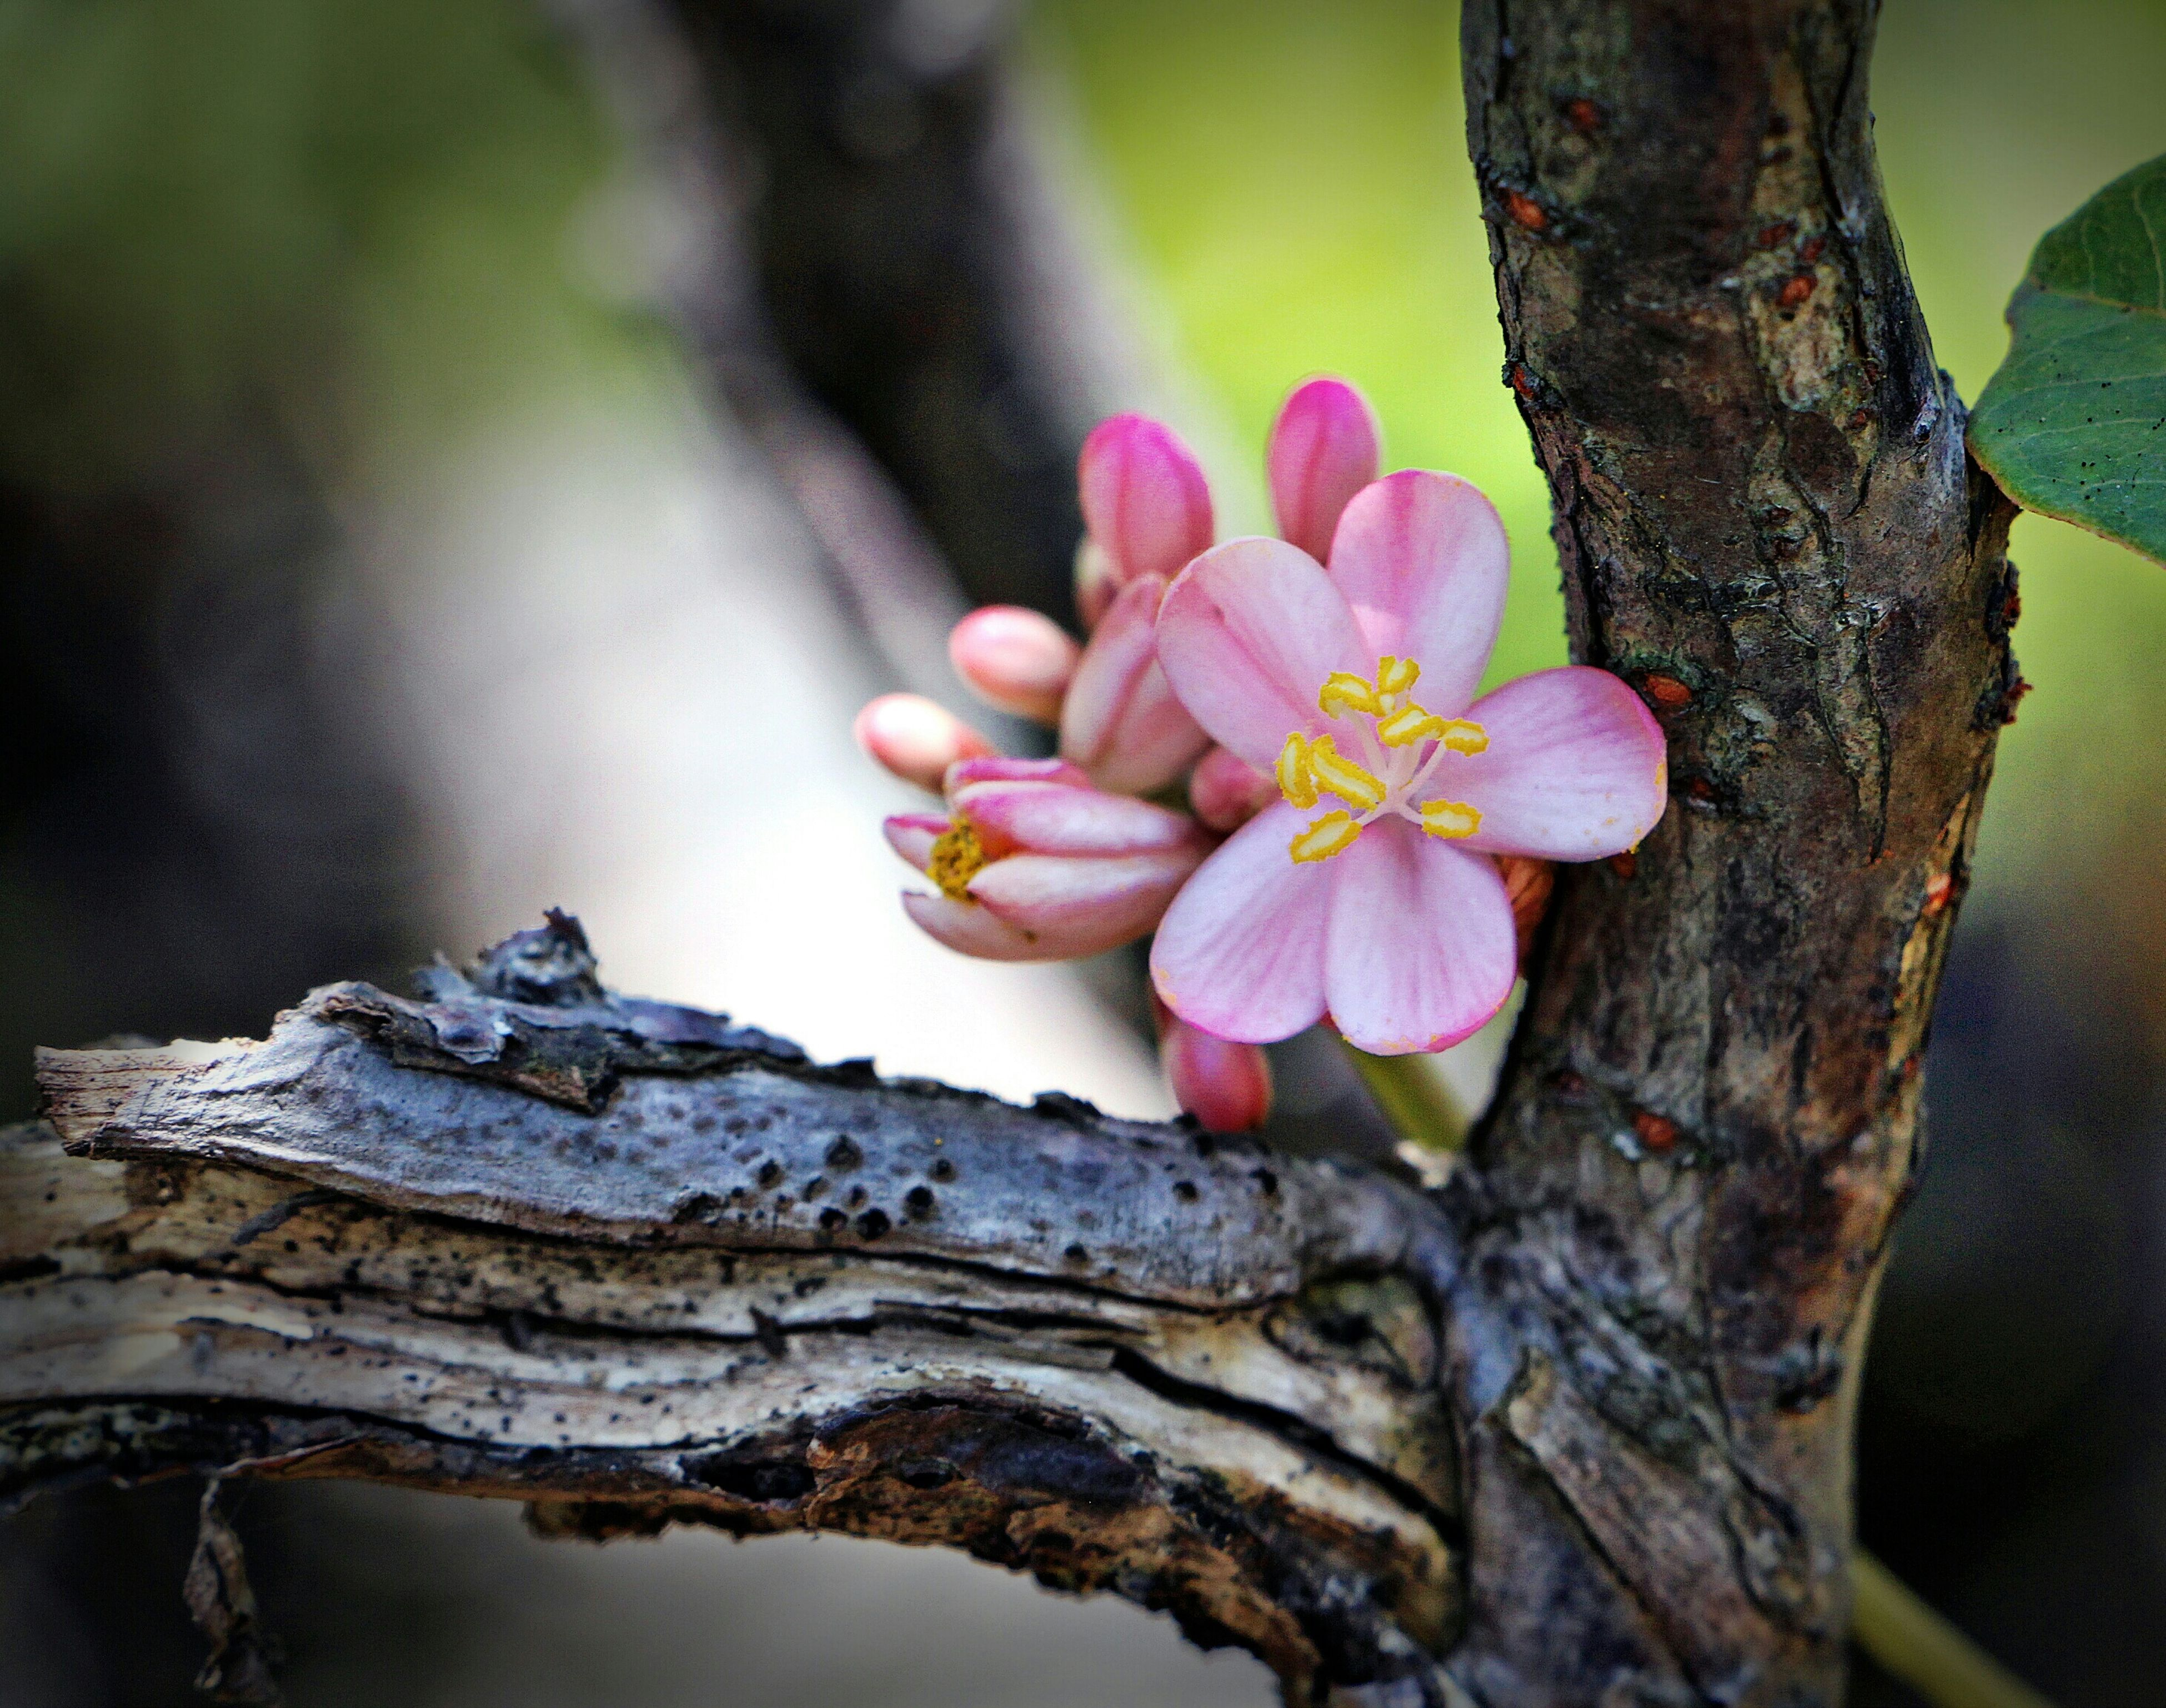 flower, petal, fragility, freshness, close-up, growth, focus on foreground, beauty in nature, flower head, nature, wood - material, tree trunk, single flower, pink color, botany, outdoors, plant, day, selective focus, no people